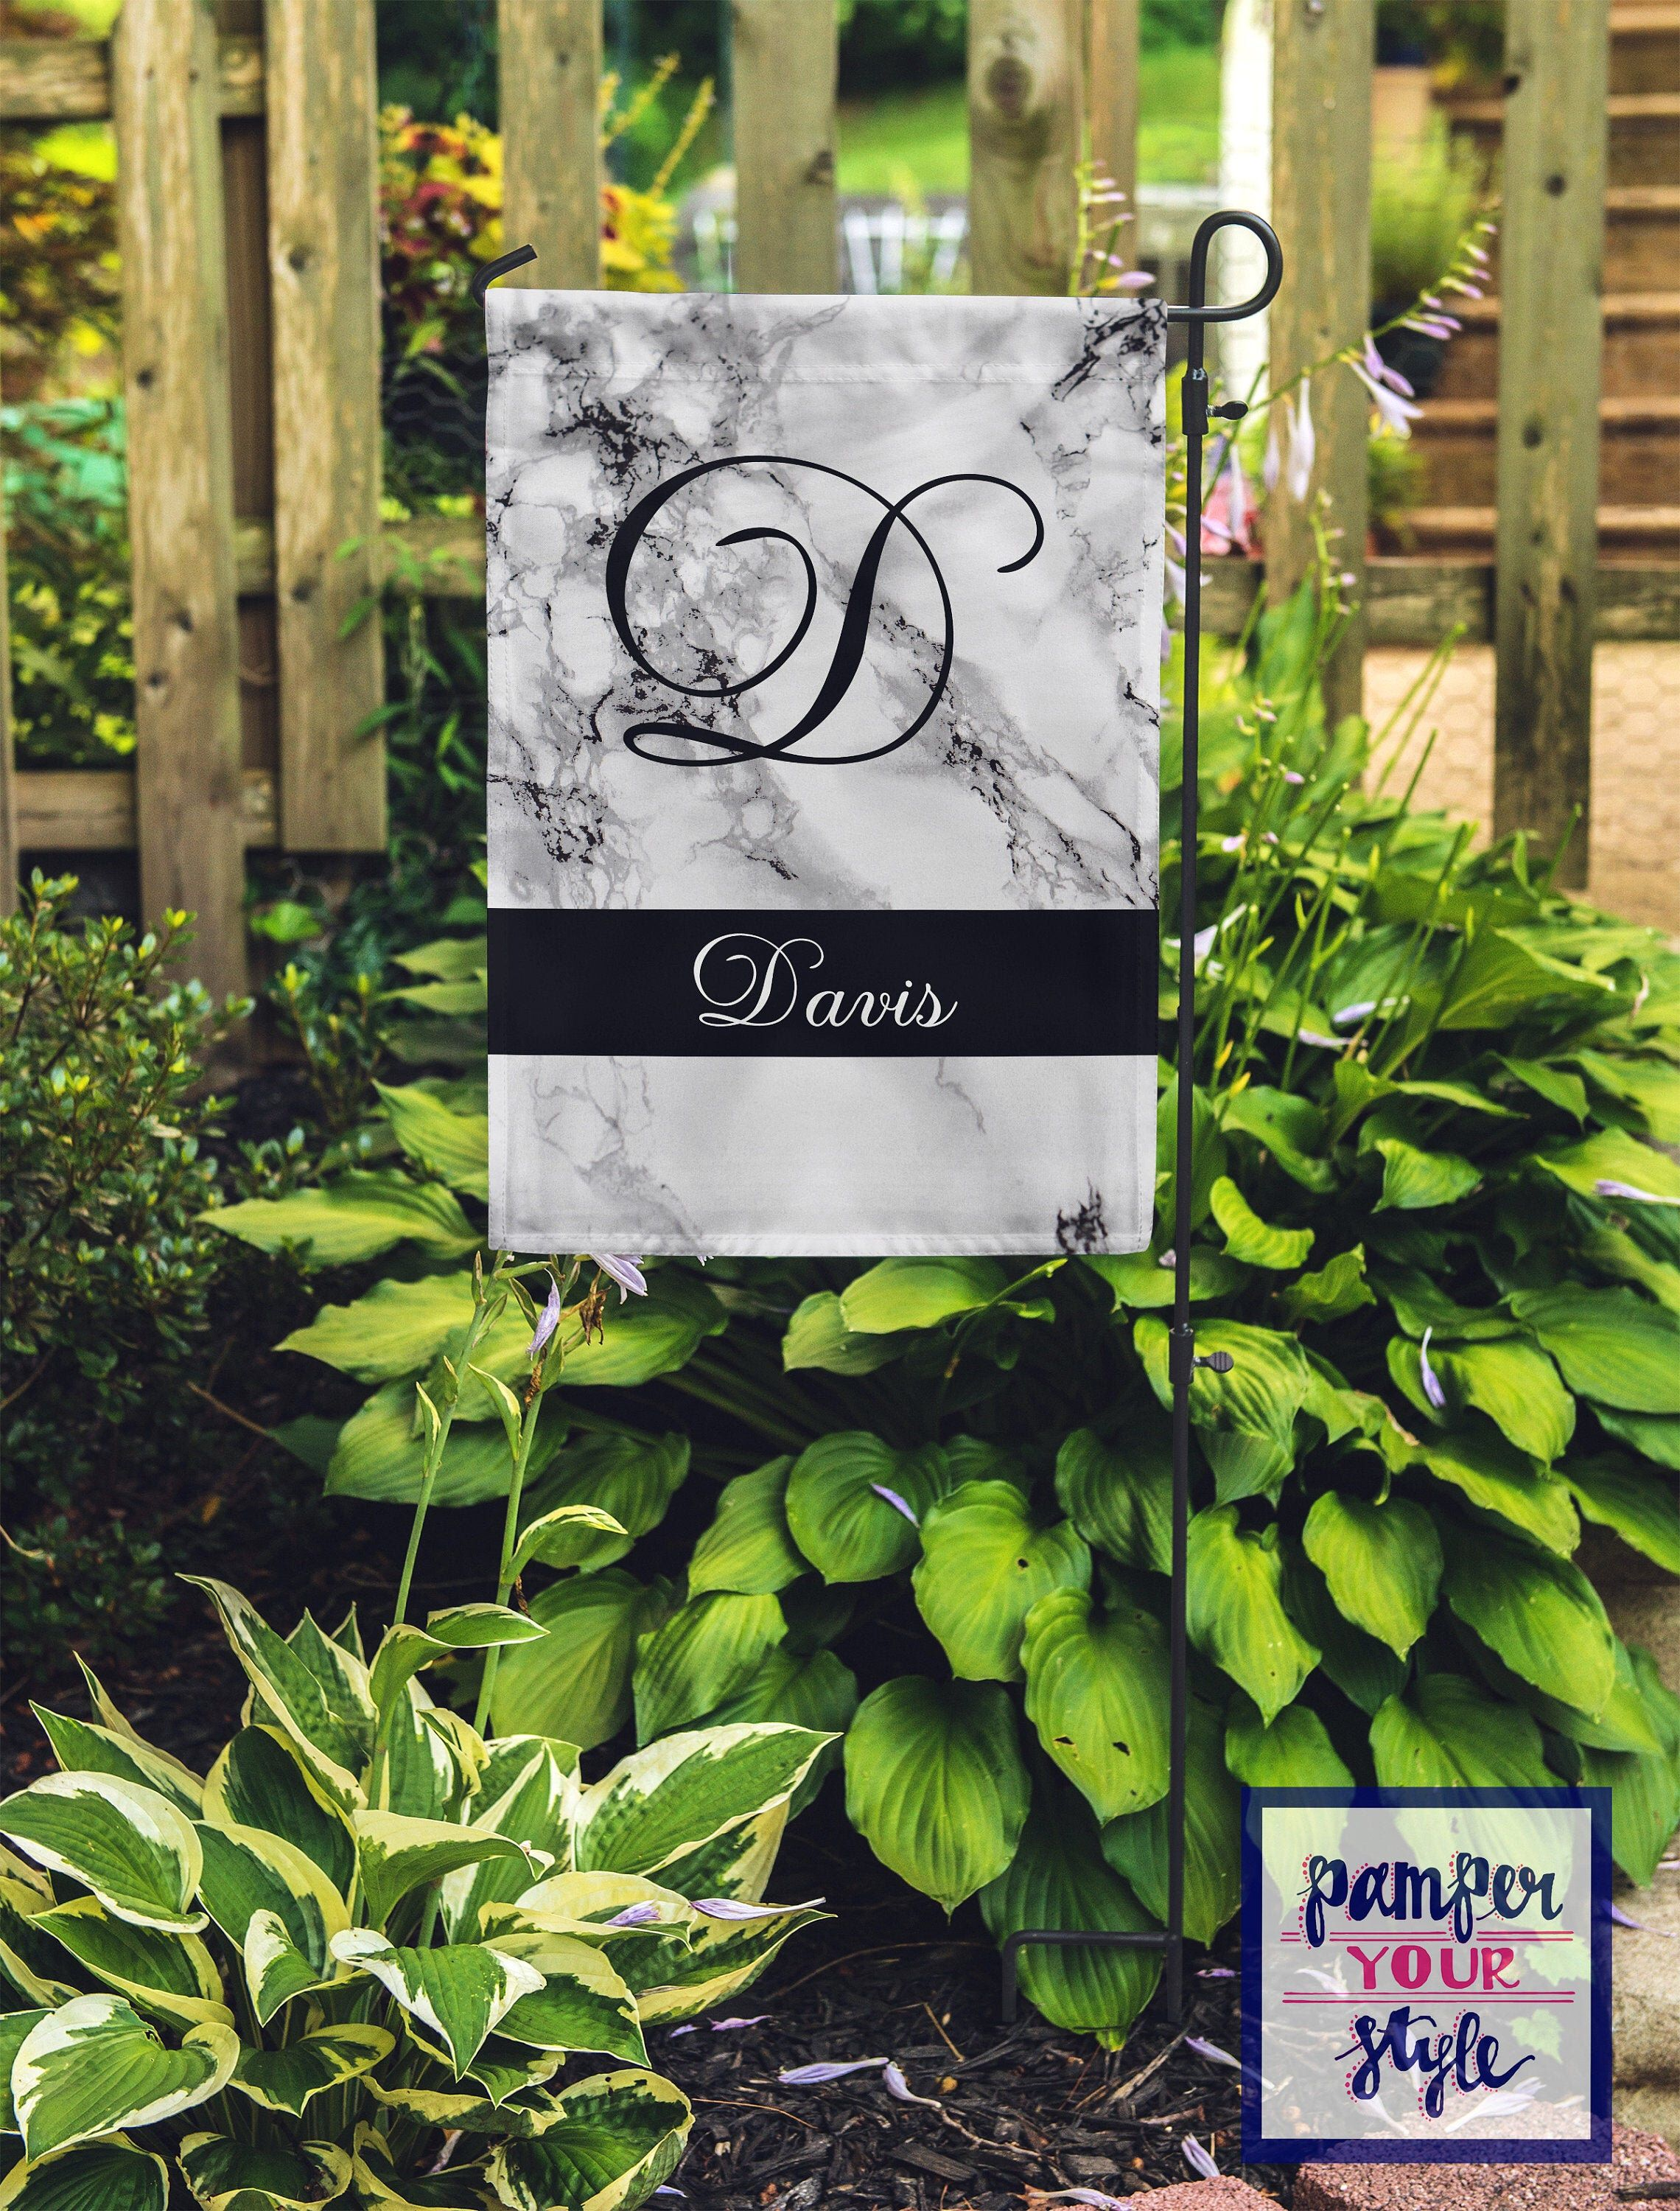 Classic Marble Garden Flag Personalized Stone Look Flag Etsy In 2020 Personalized Garden Flag Christmas Yard Decorations Garden Flags